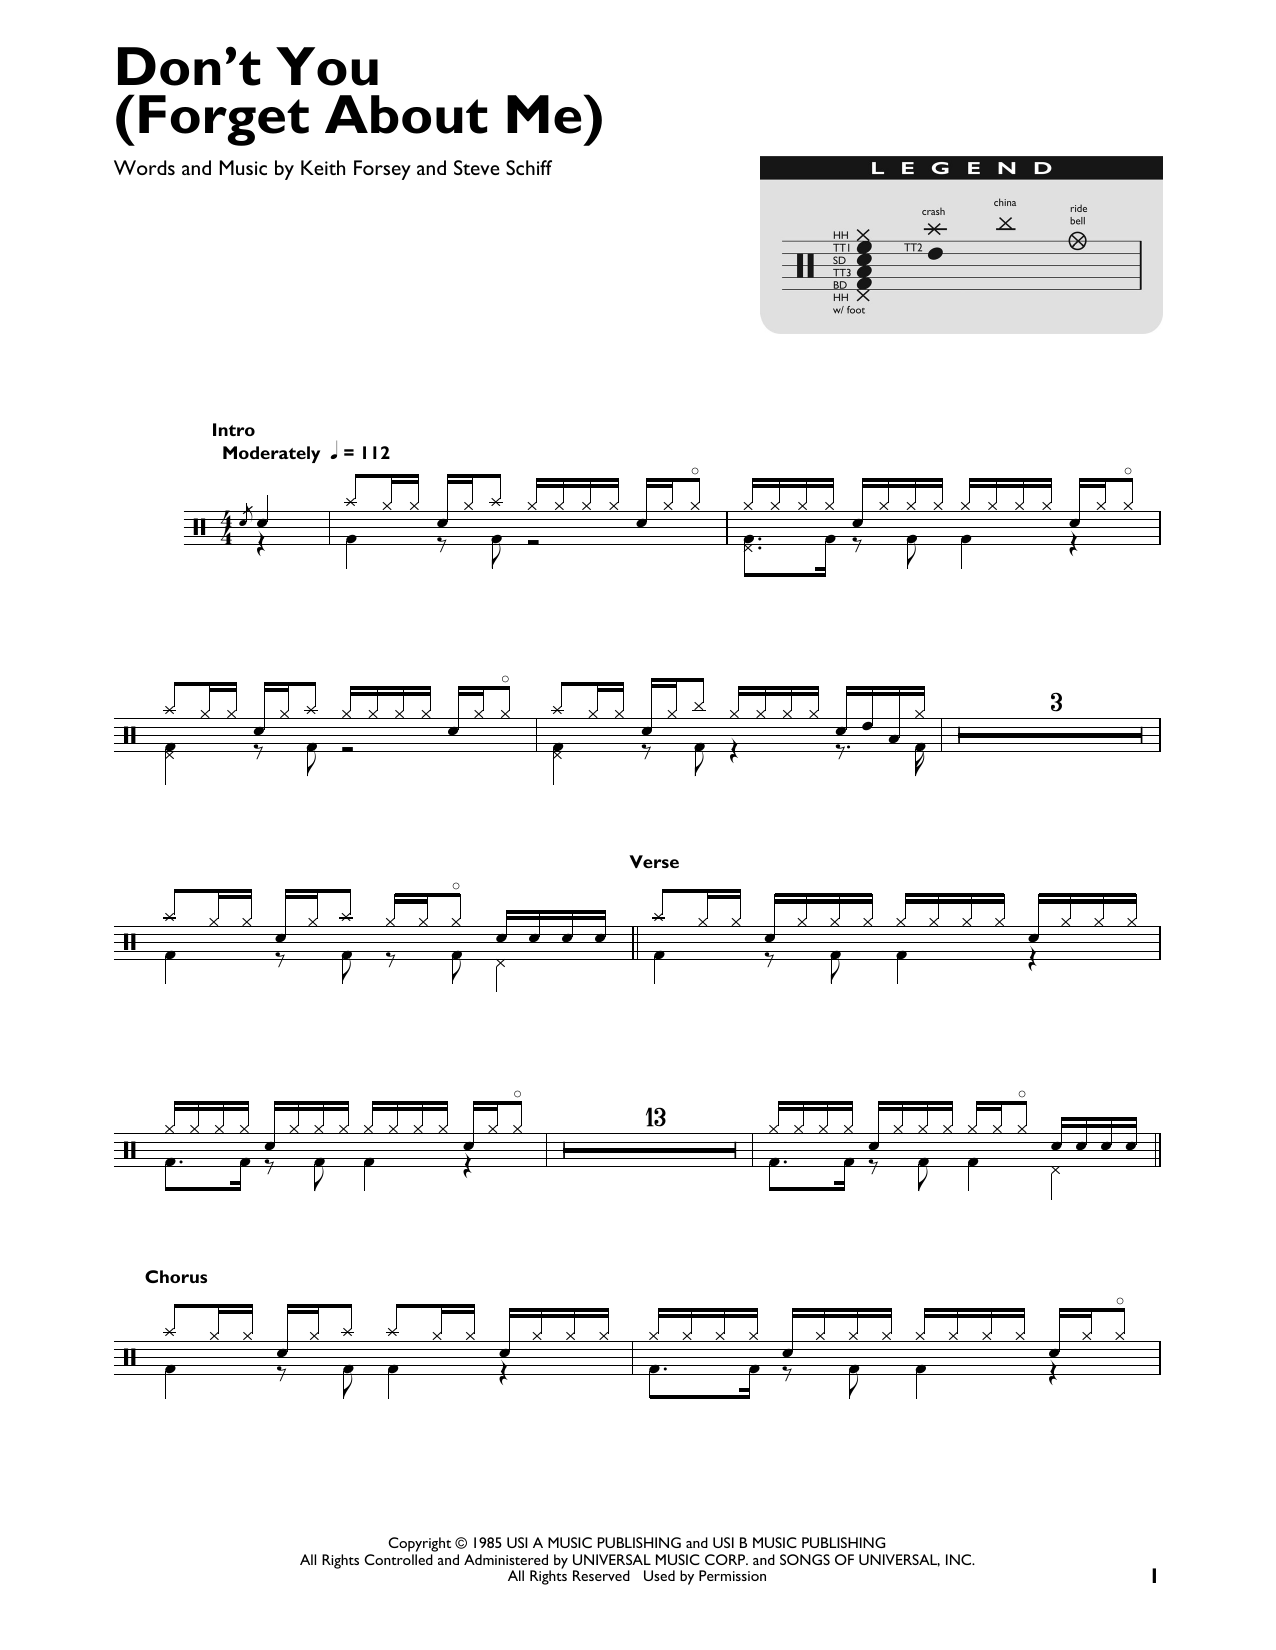 Don't You (Forget About Me) (Drum Chart)